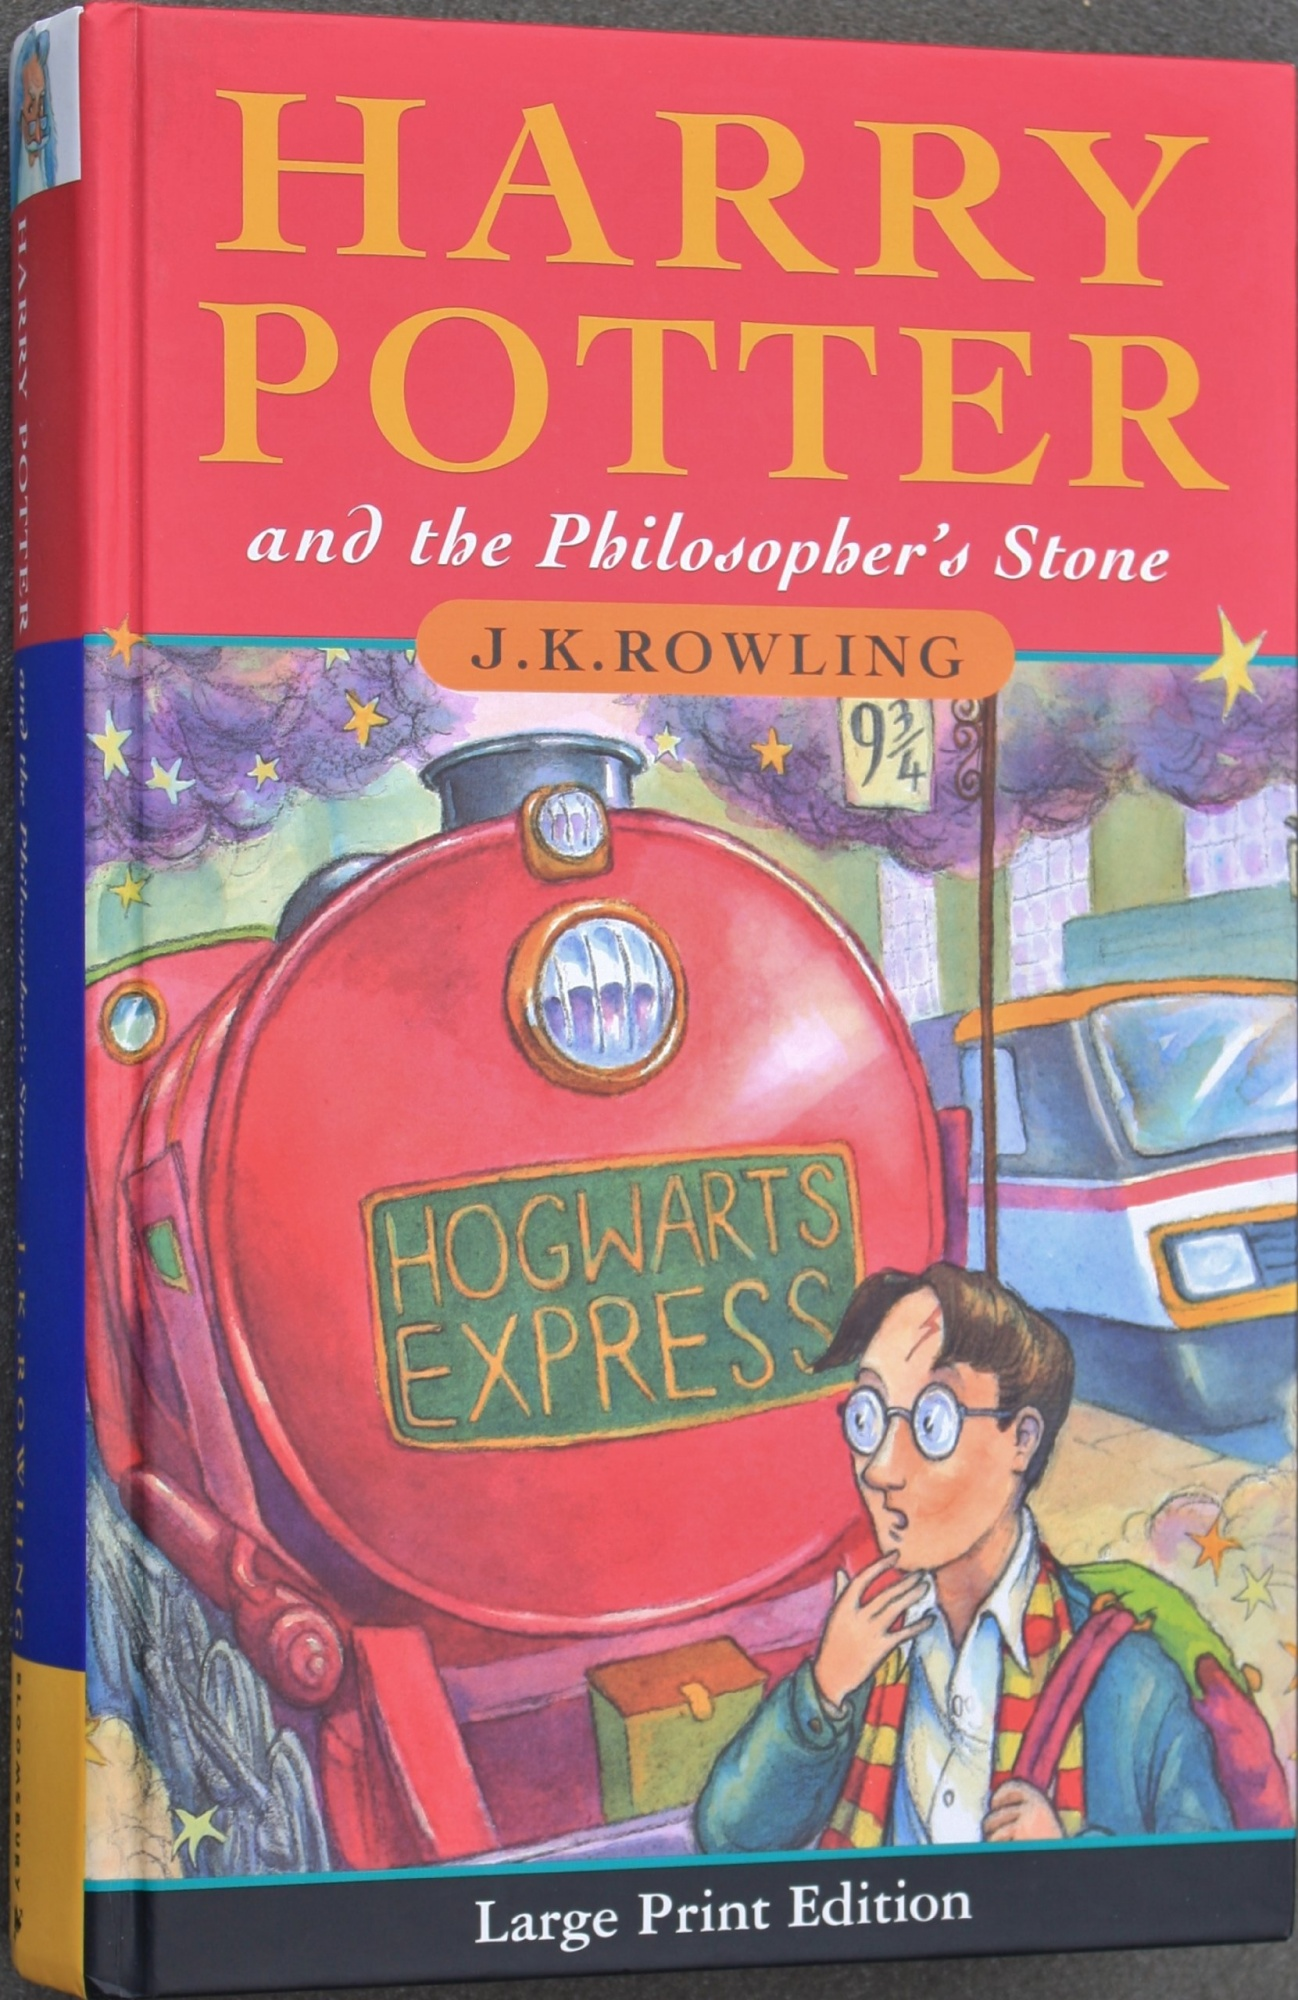 Harry Potter & the Philosopher's Stone (Large Print Edition)